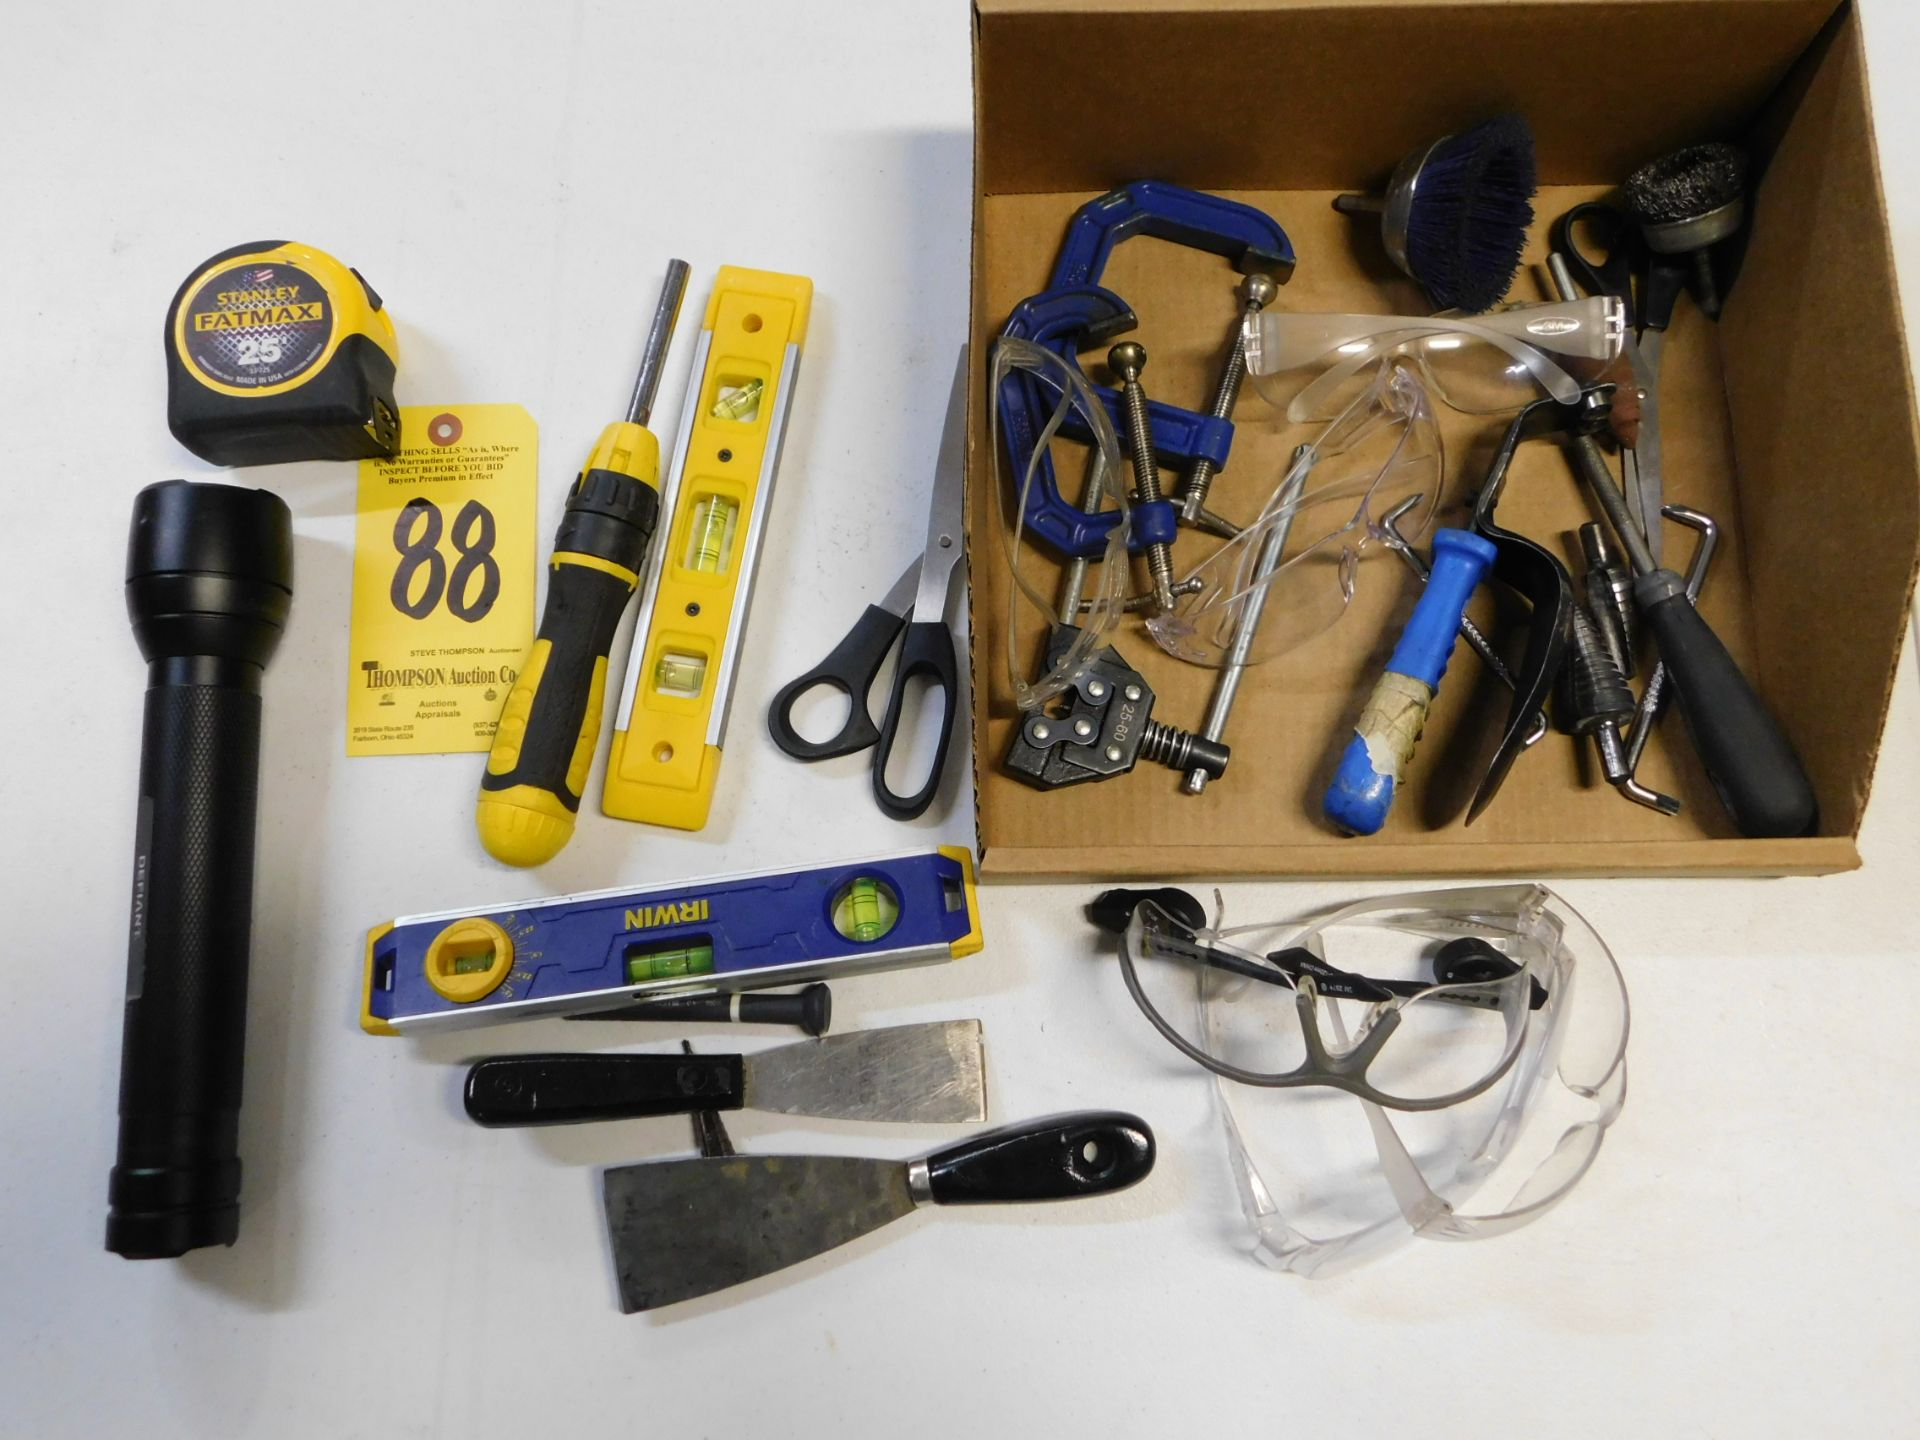 Lot 88 - Miscellaneous Hand Tools, Lot Location 3204 Olympia Dr. A, Lafayette, IN 47909